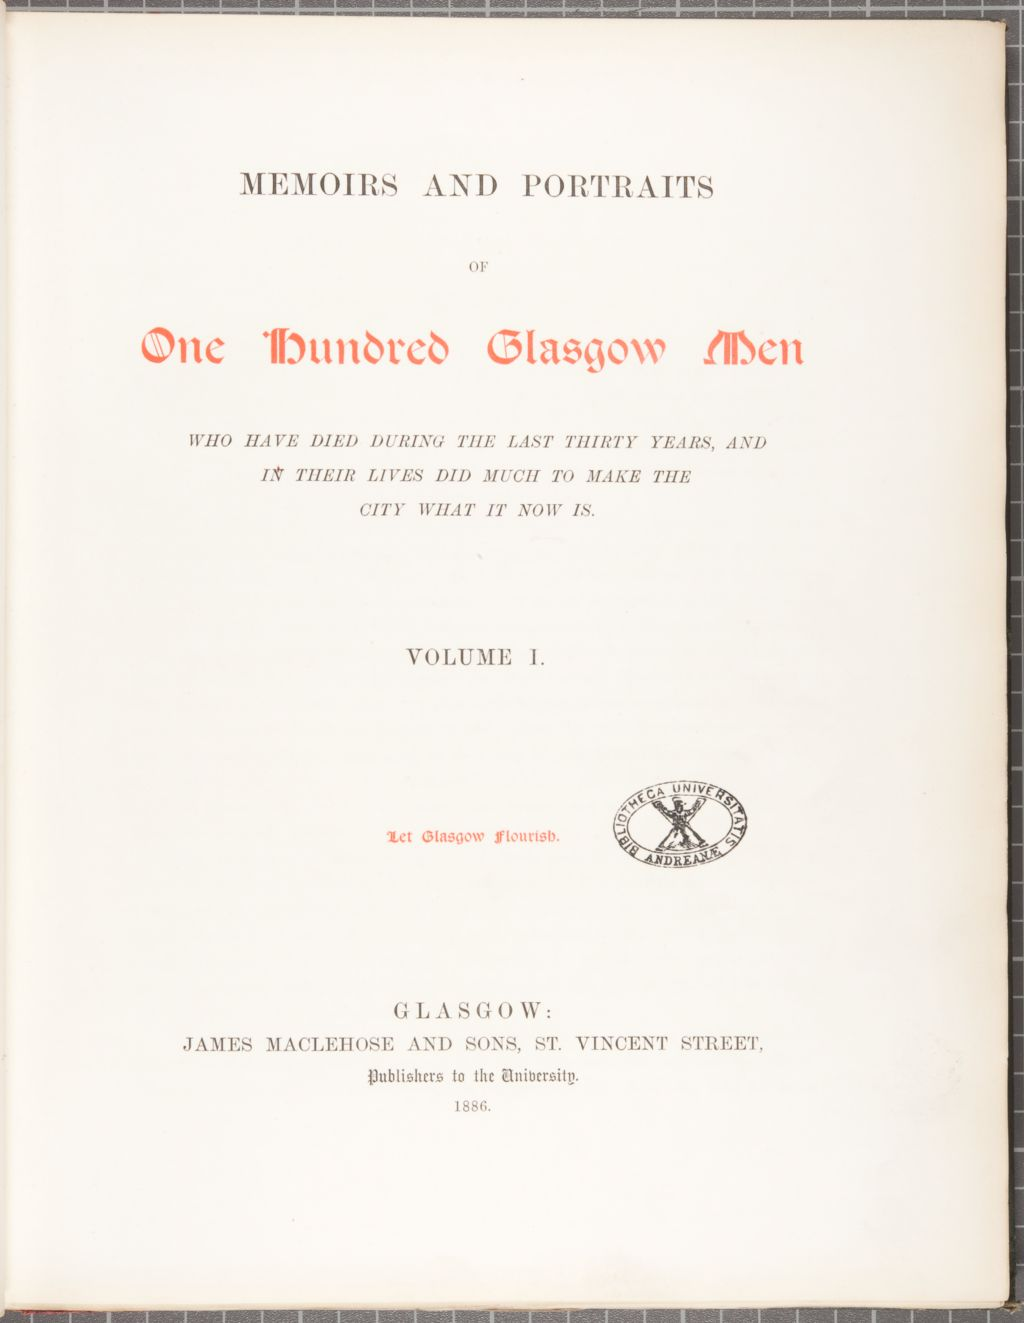 Memoirs and portraits of one hundred Glasgow men who have died during the last thirty years, and in their lives did much to make the city what it now is.